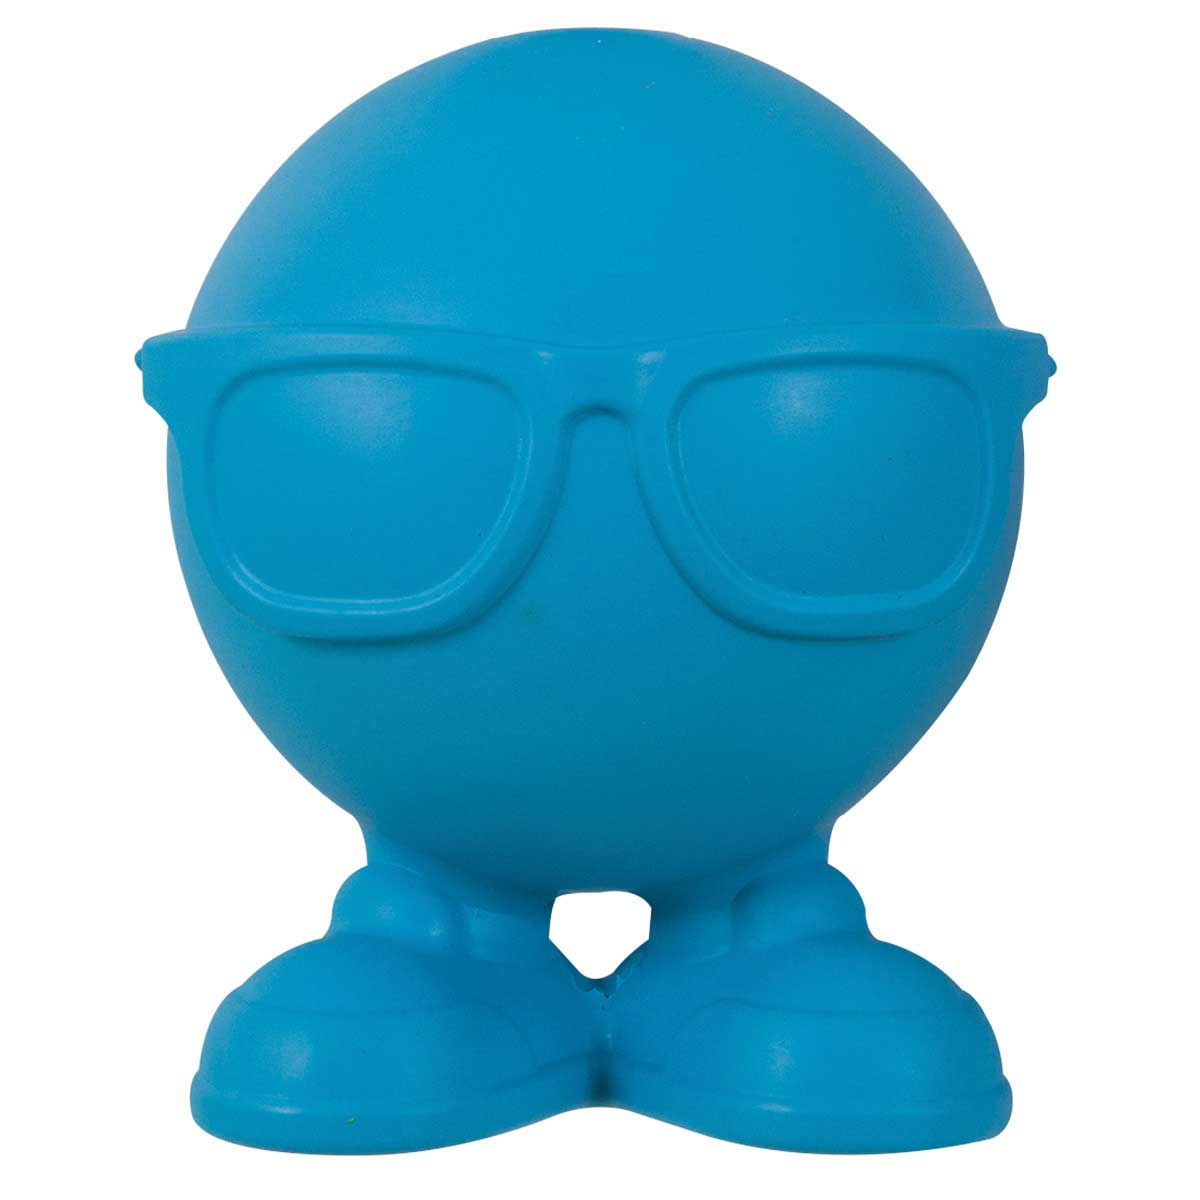 Medium 4 inch JW Rubber Hipster Cuz Bounce Toy